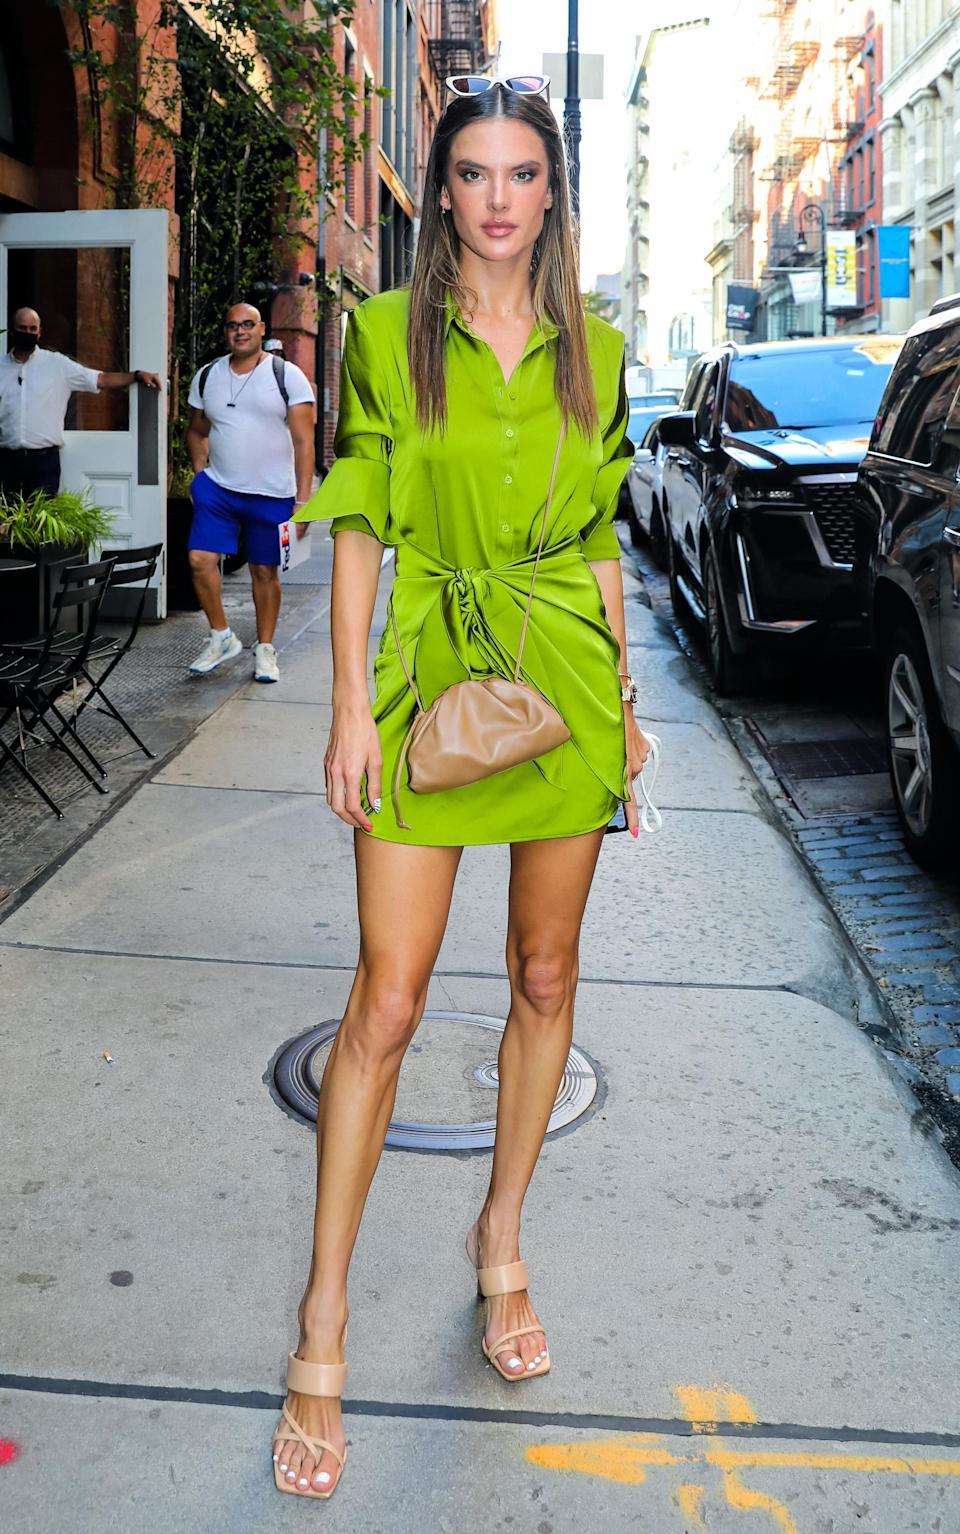 Alessandra Ambrosio celebrates the end of summer with a bold green shirt dress.  - Credit: Jose Perez / Bauergriffin.com / MEGA